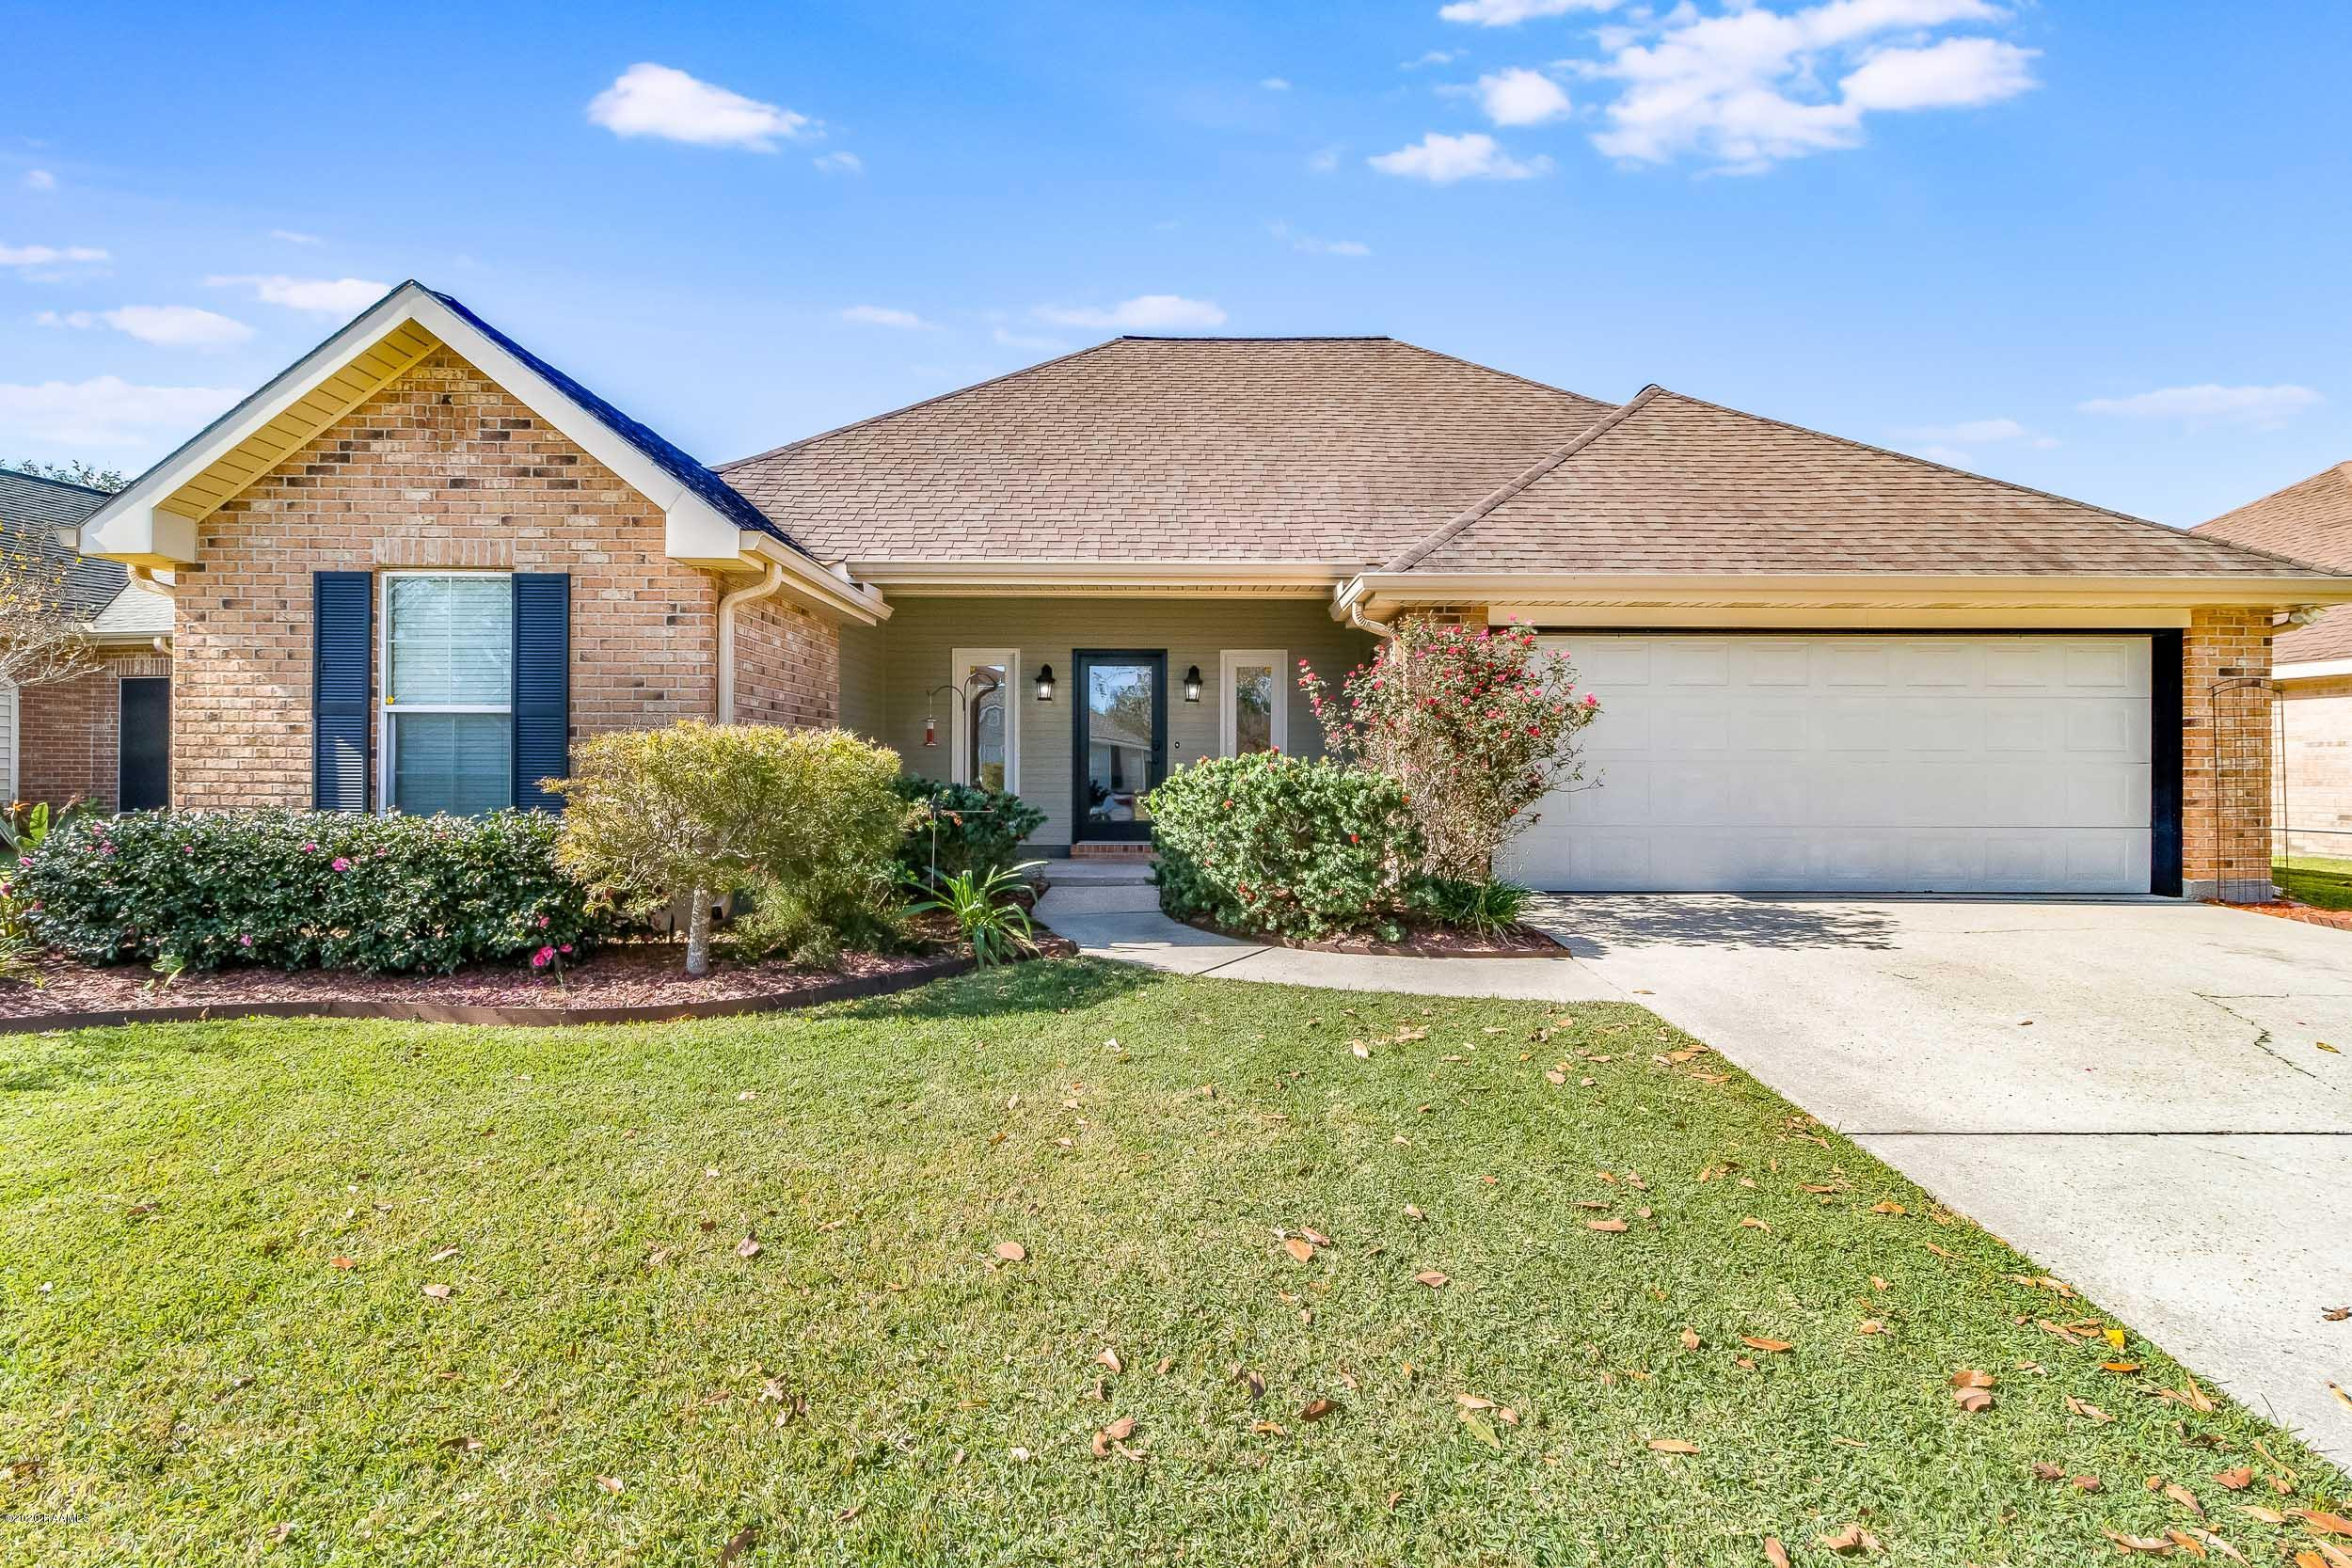 309 Wallingsford Circle, Youngsville, LA 70592